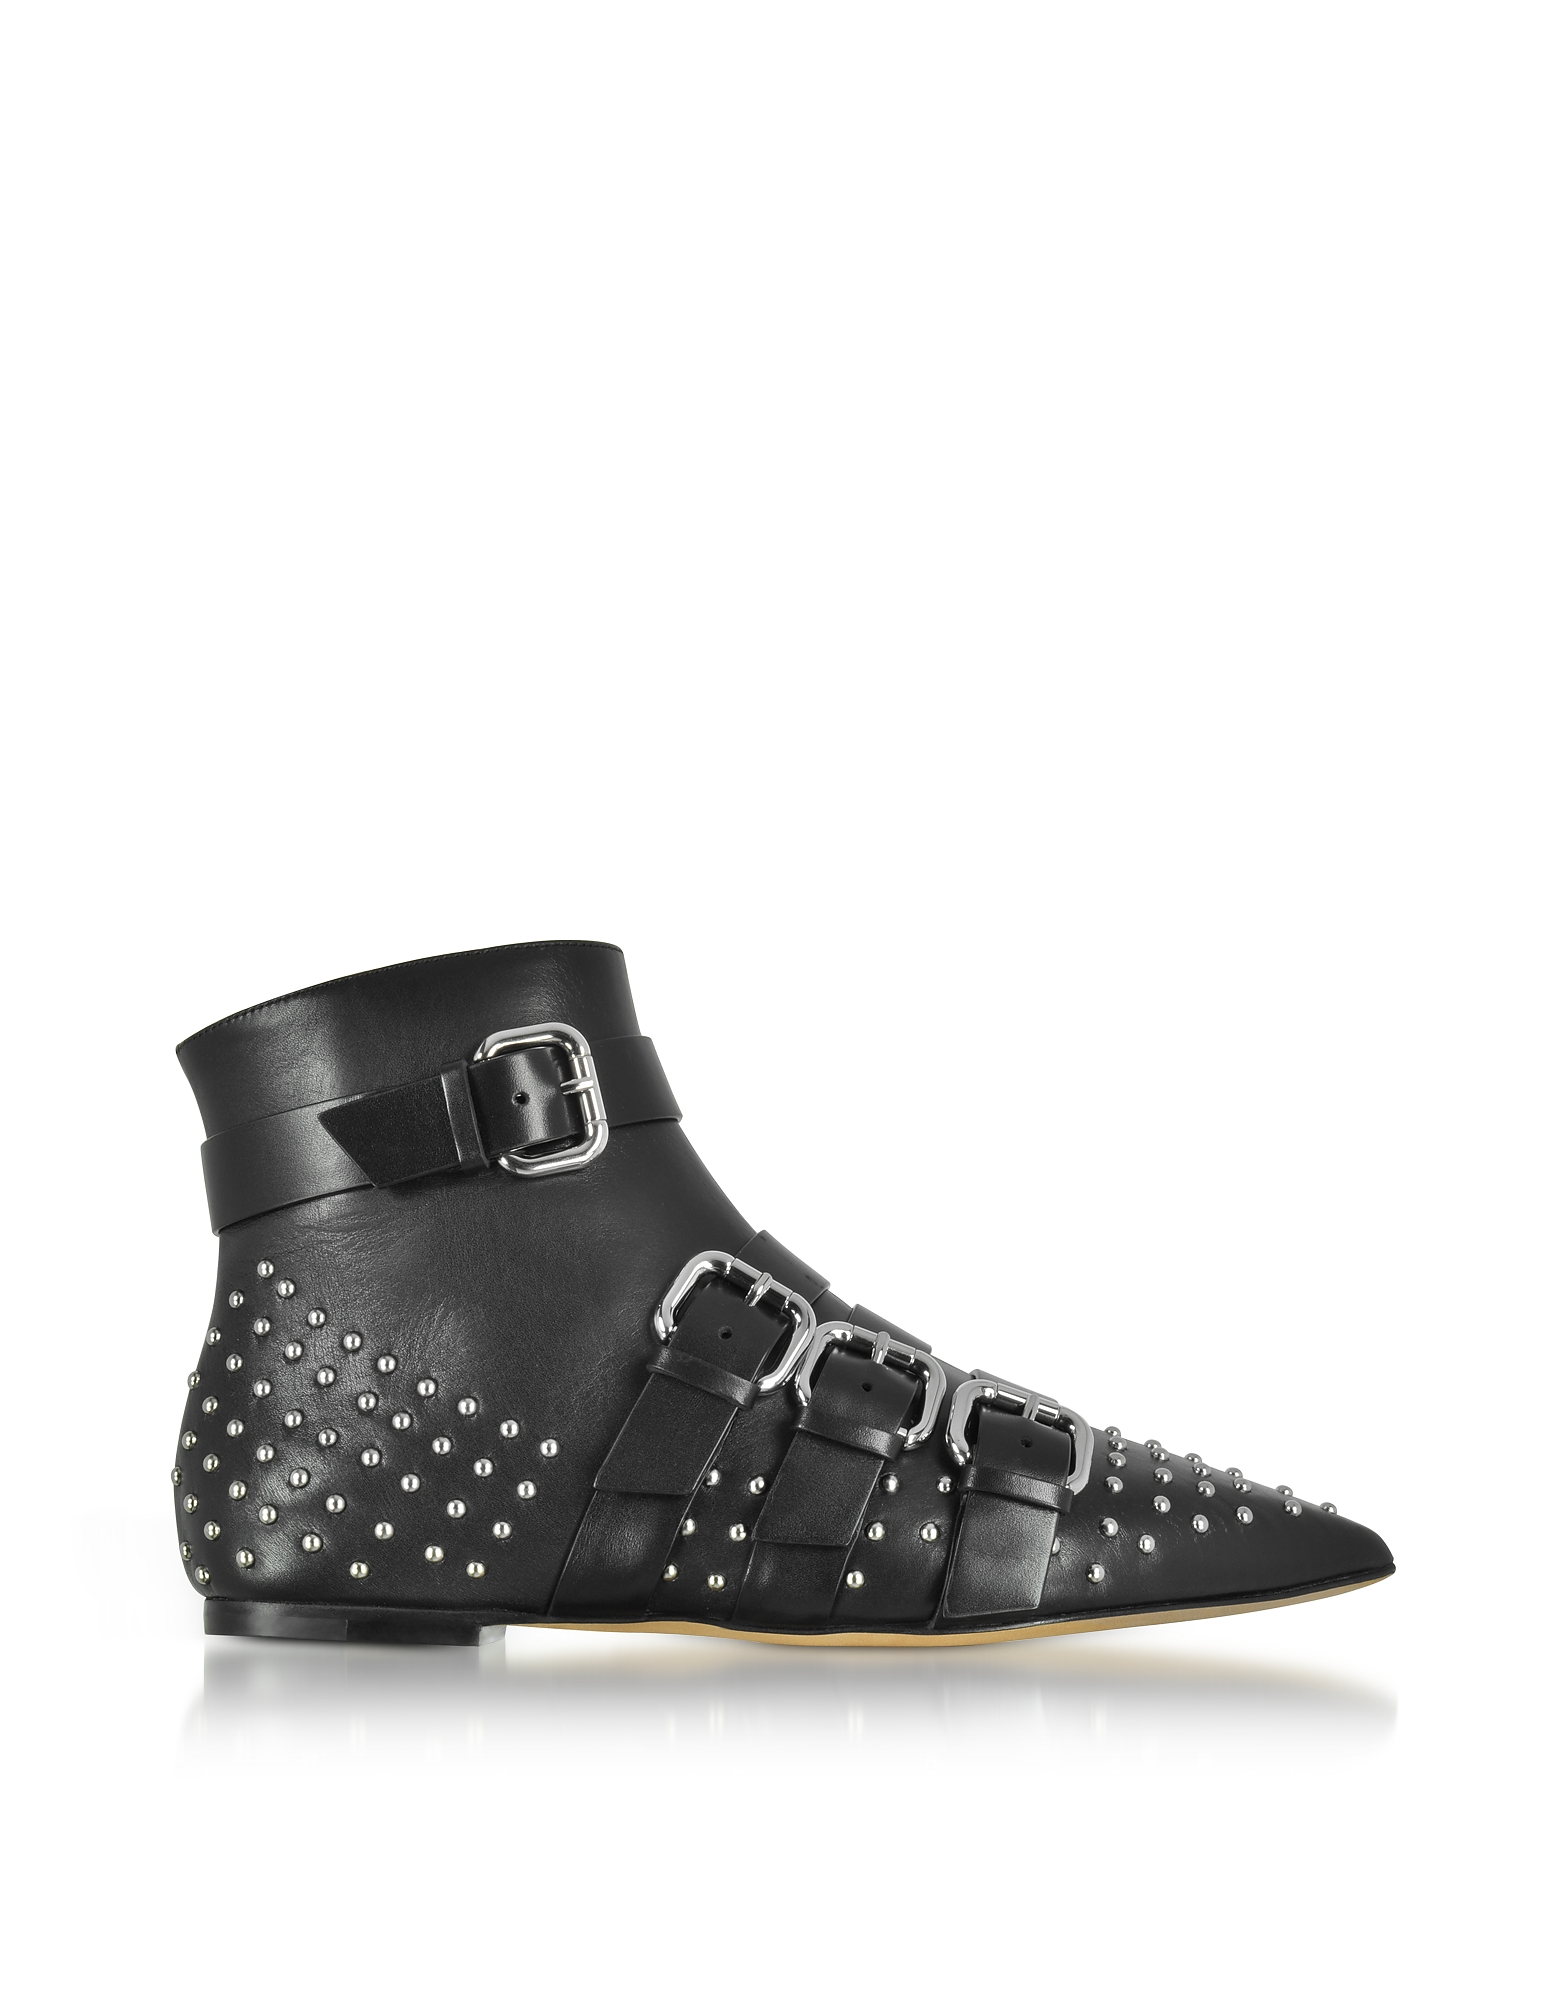 RED Valentino Black Leather Pointy Booties w/Buckles and Studs